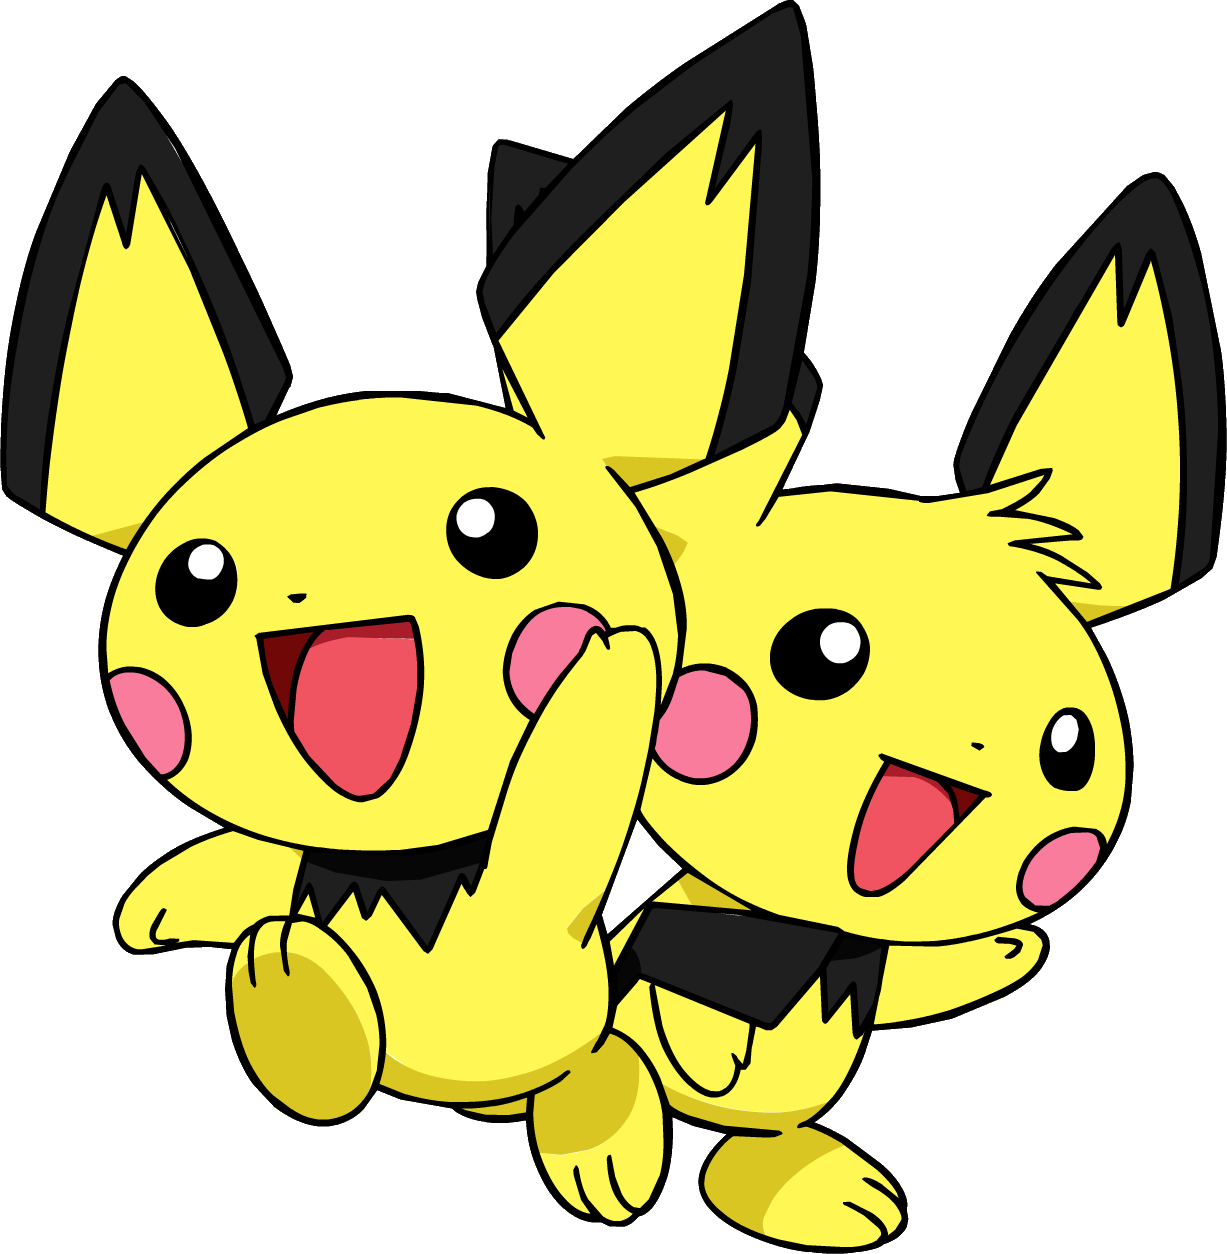 latest?cb=20141230084736 also with pikachu snivy tepig and oshawott on pokemon coloring pages of snivy further pokemon coloring pages of snivy 2 on pokemon coloring pages of snivy furthermore pokemon coloring pages of snivy 3 on pokemon coloring pages of snivy also with glaceon line drawing on pokemon coloring pages of snivy